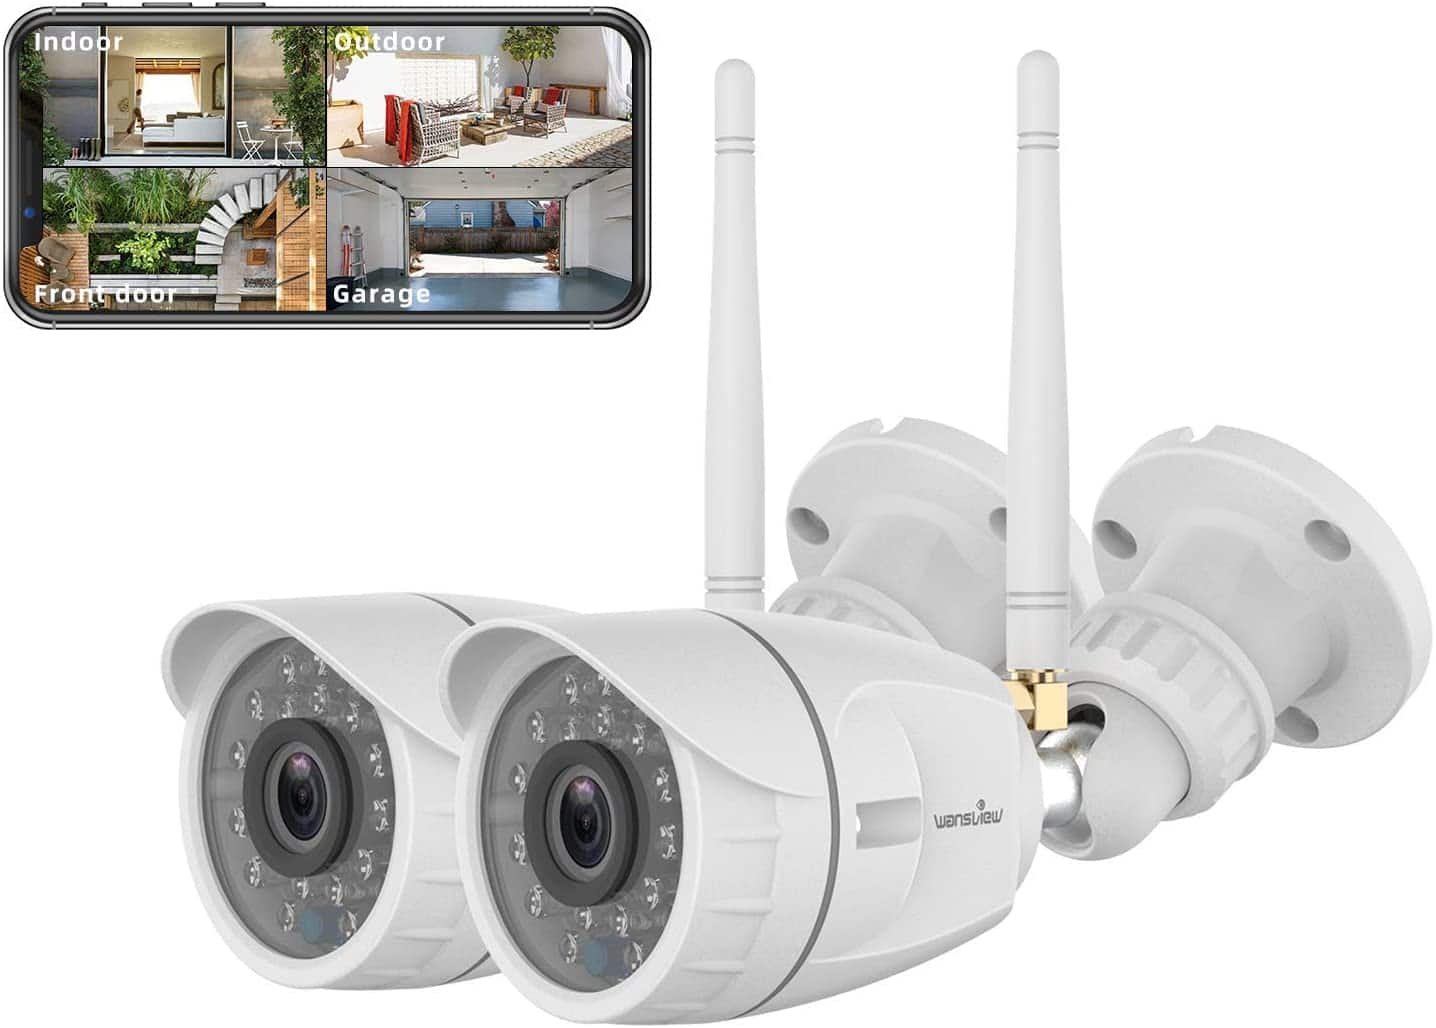 Wansview Outdoor Security Camera ( 2pack) $41.99+ free Shipping